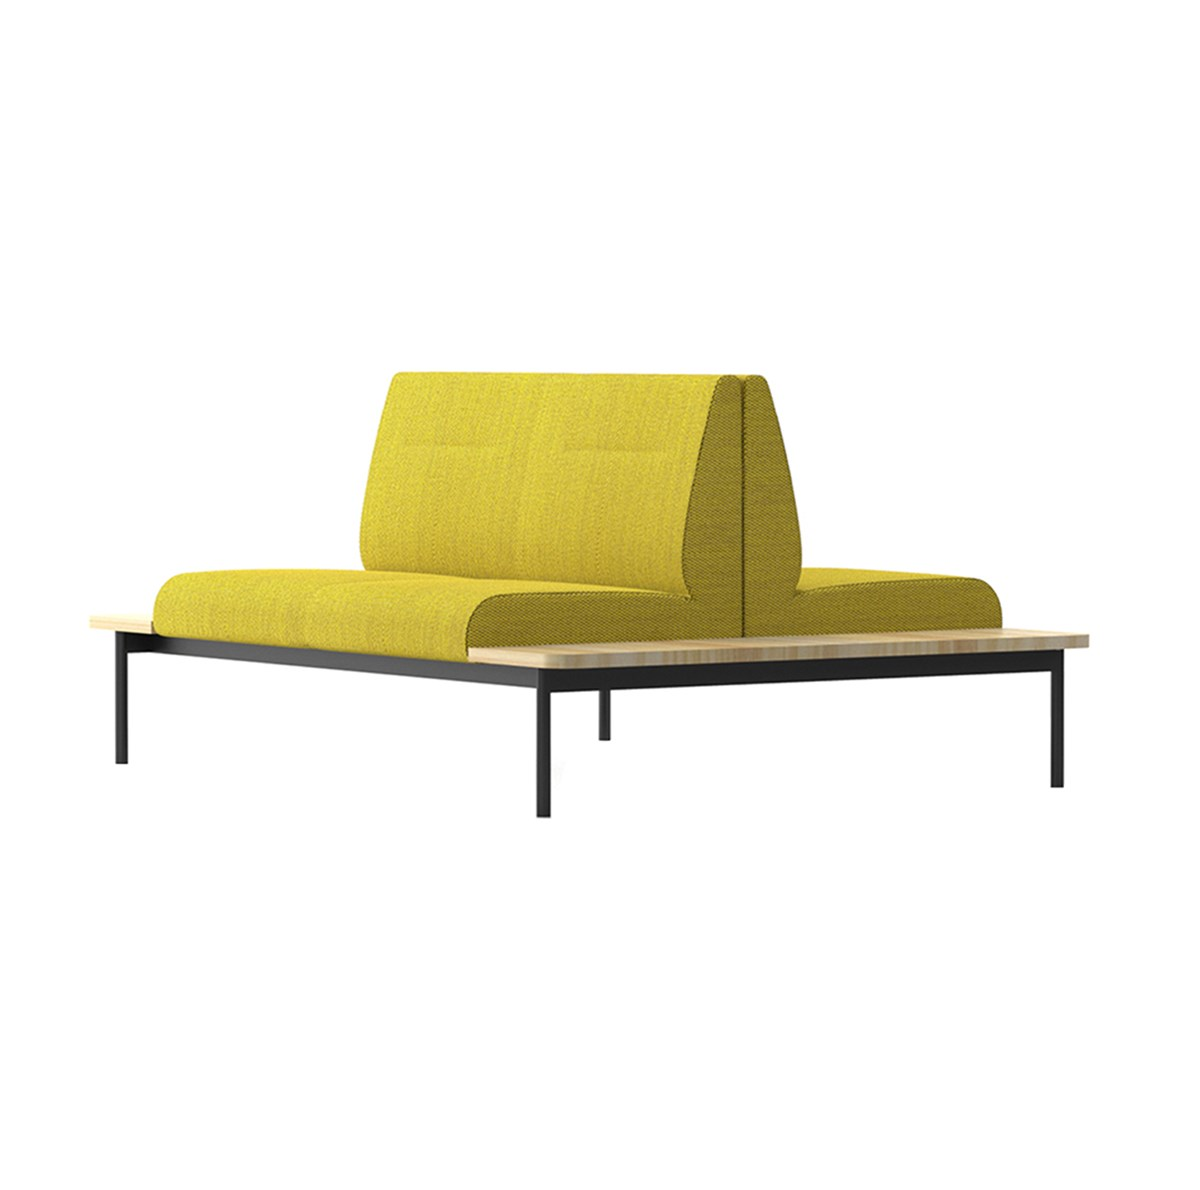 Neospace-Convey-Sofa-System-Contract-Matisse-2